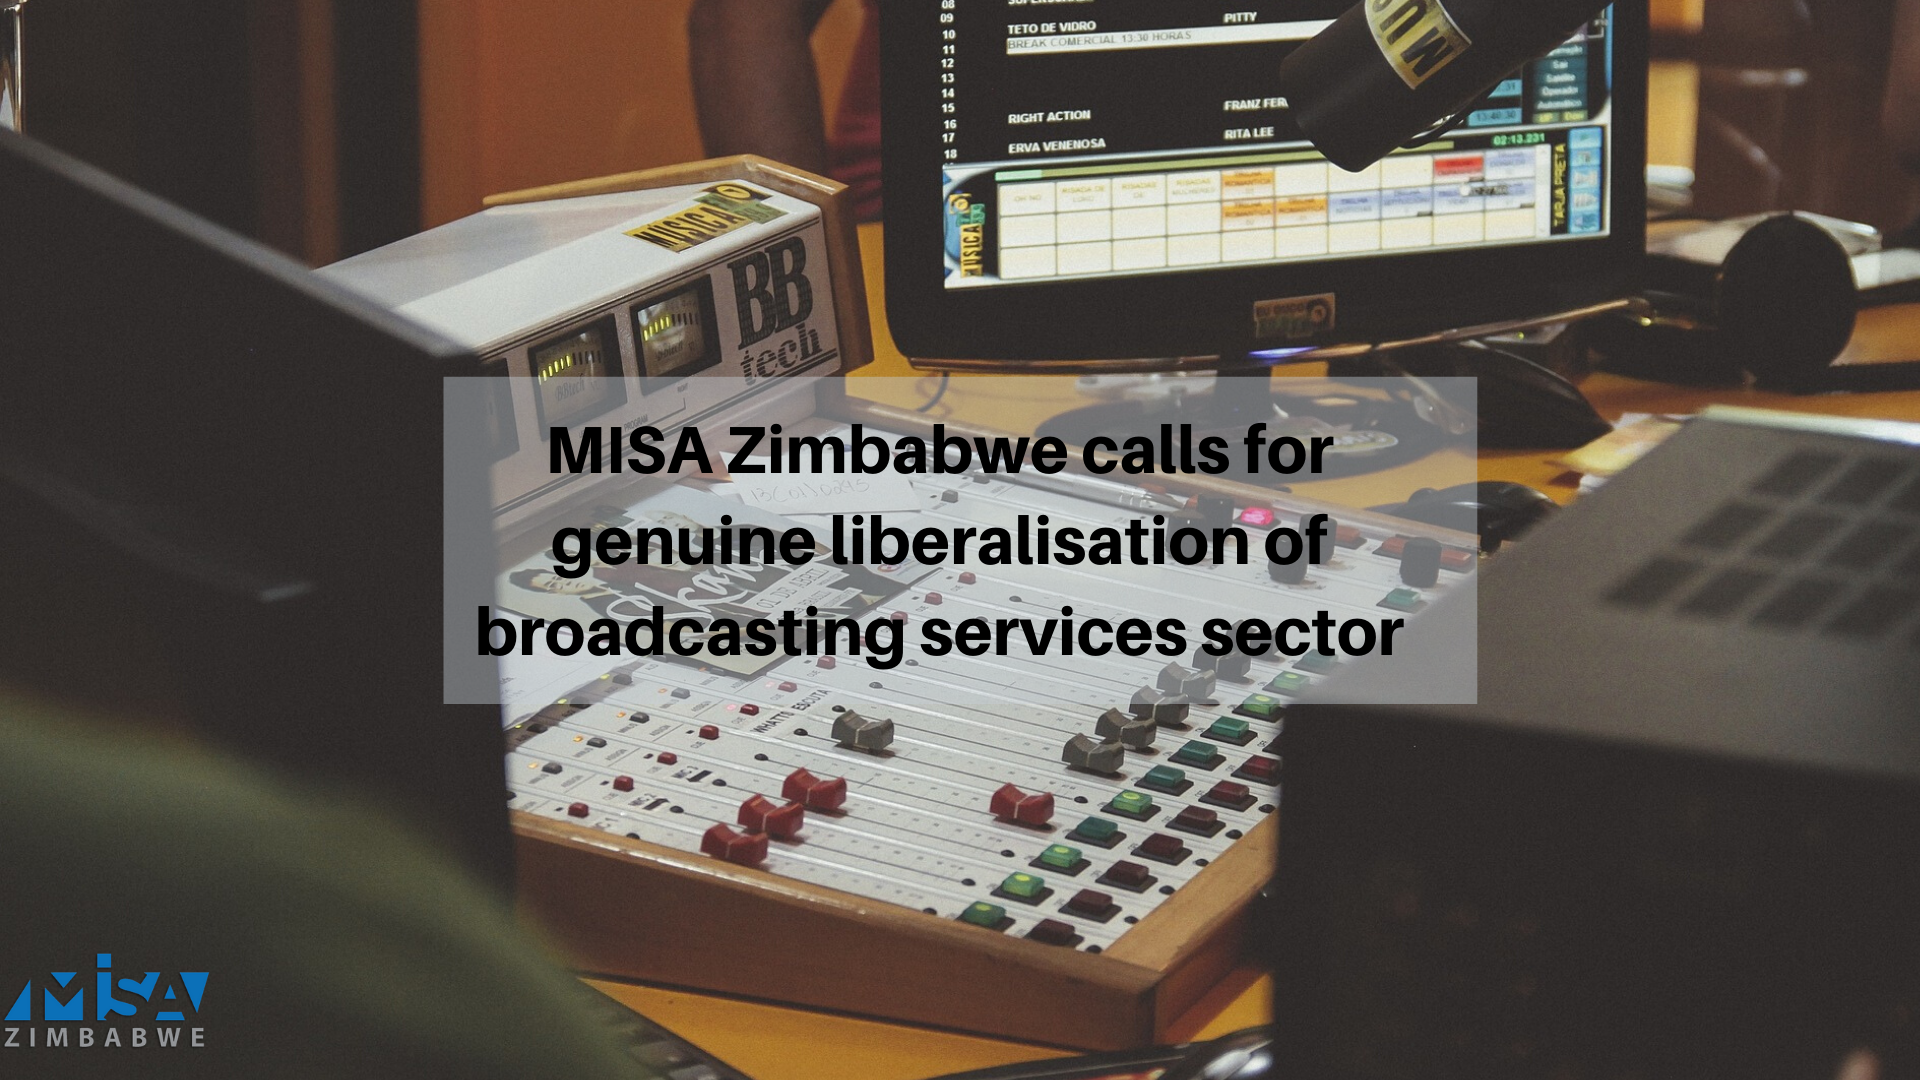 Statement: MISA Zimbabwe calls for genuine liberalisation of broadcasting services sector